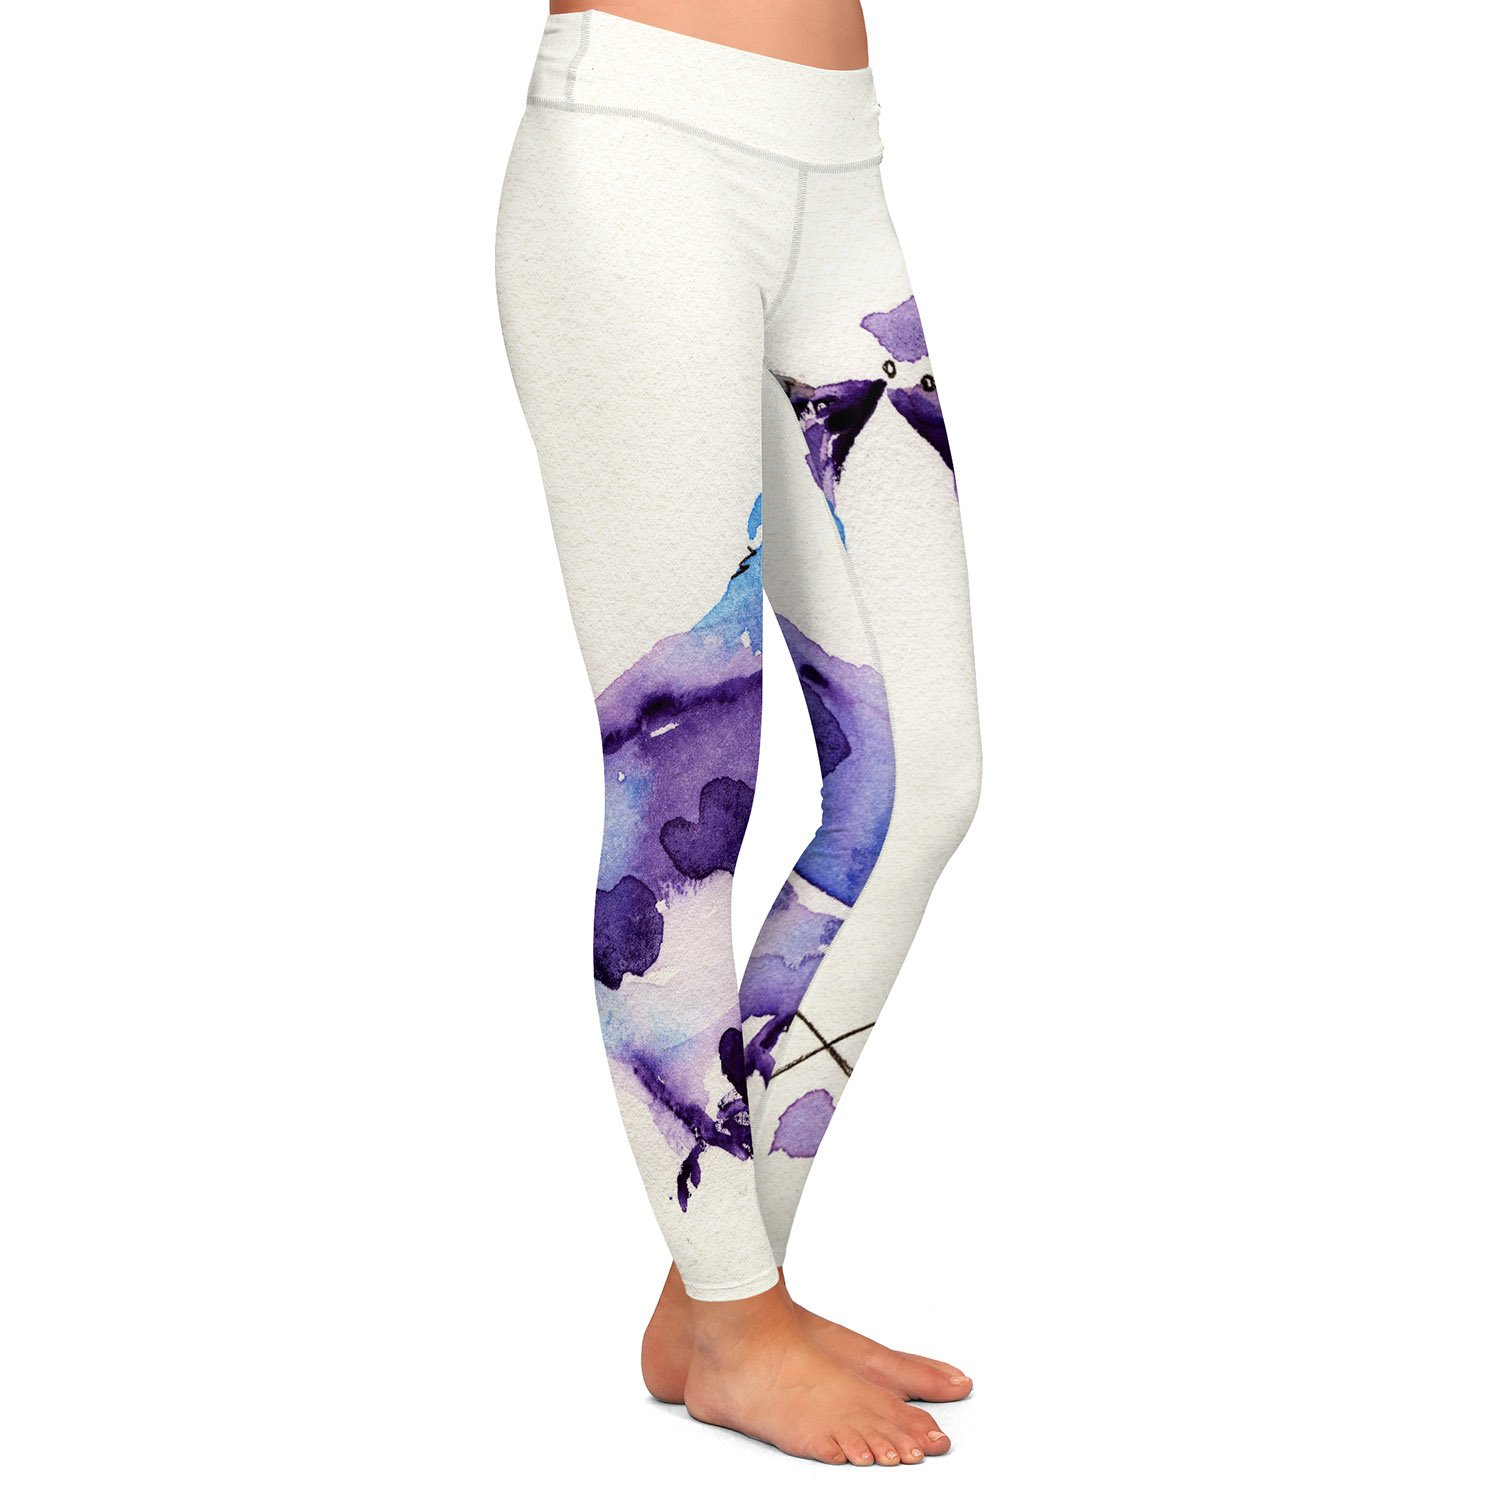 Spring Kiss Athletic Yoga Leggings from DiaNoche Designs by Dawn Derman